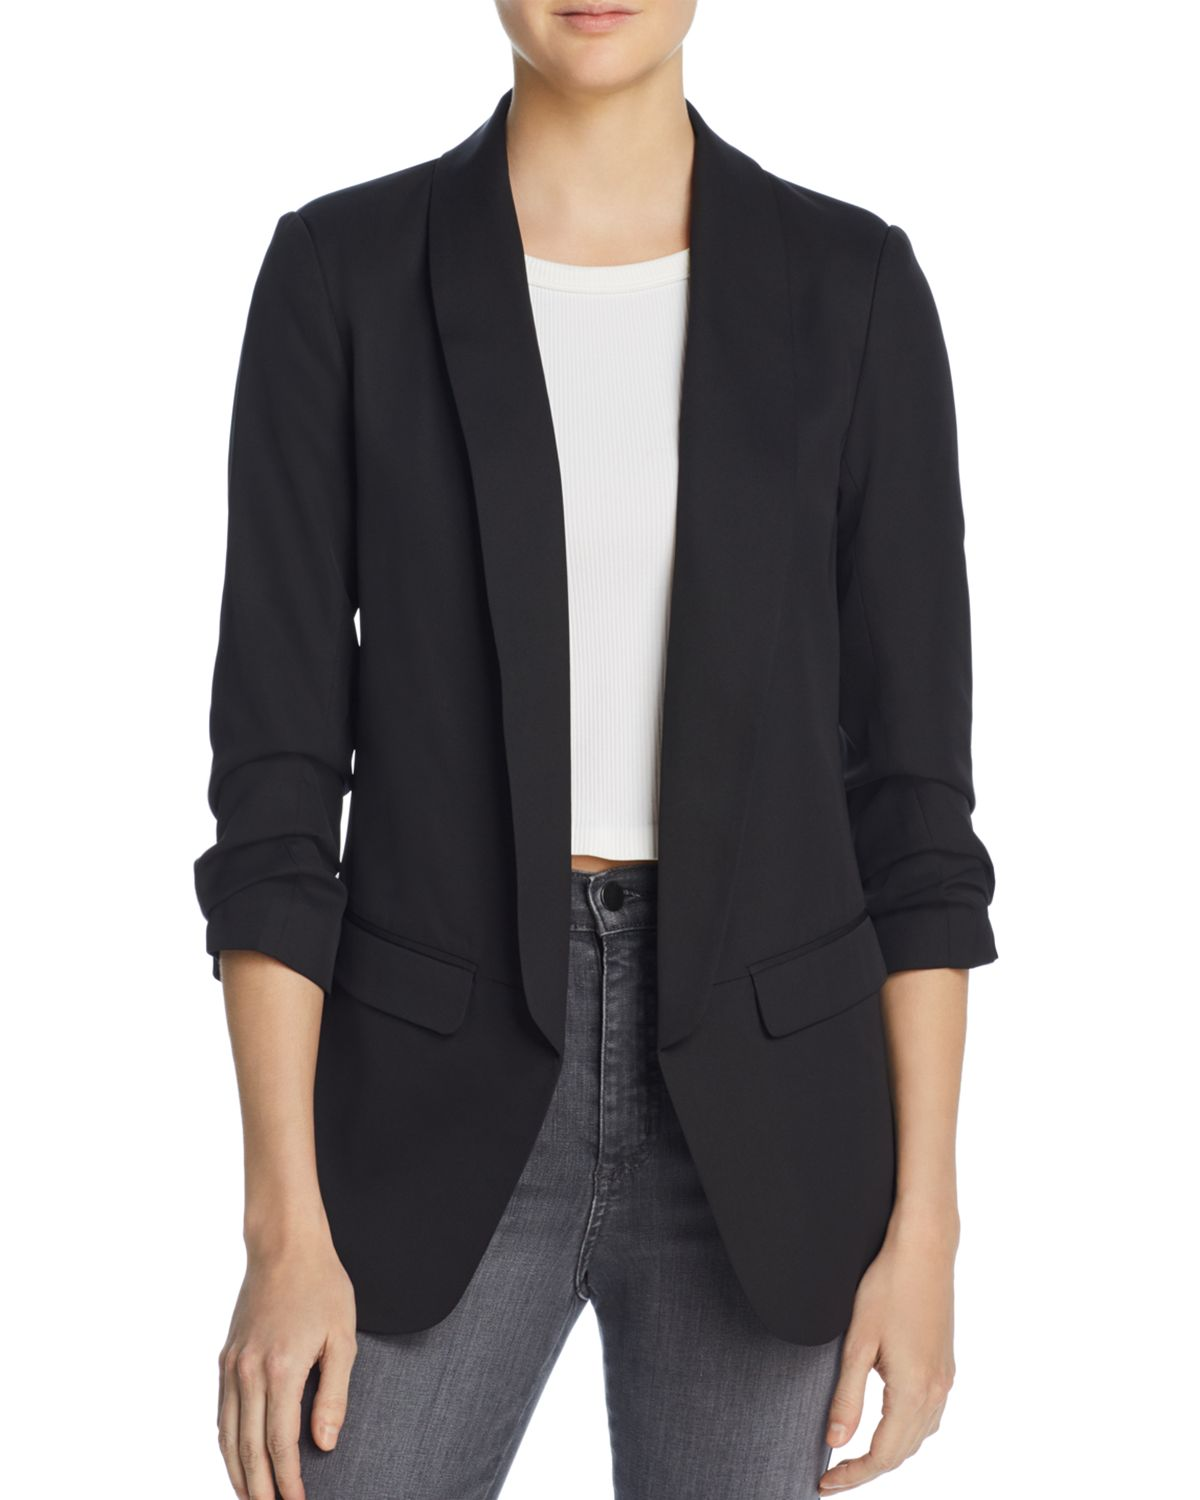 Ruched Sleeve Blazer   100 Percents Exclusive by Aqua